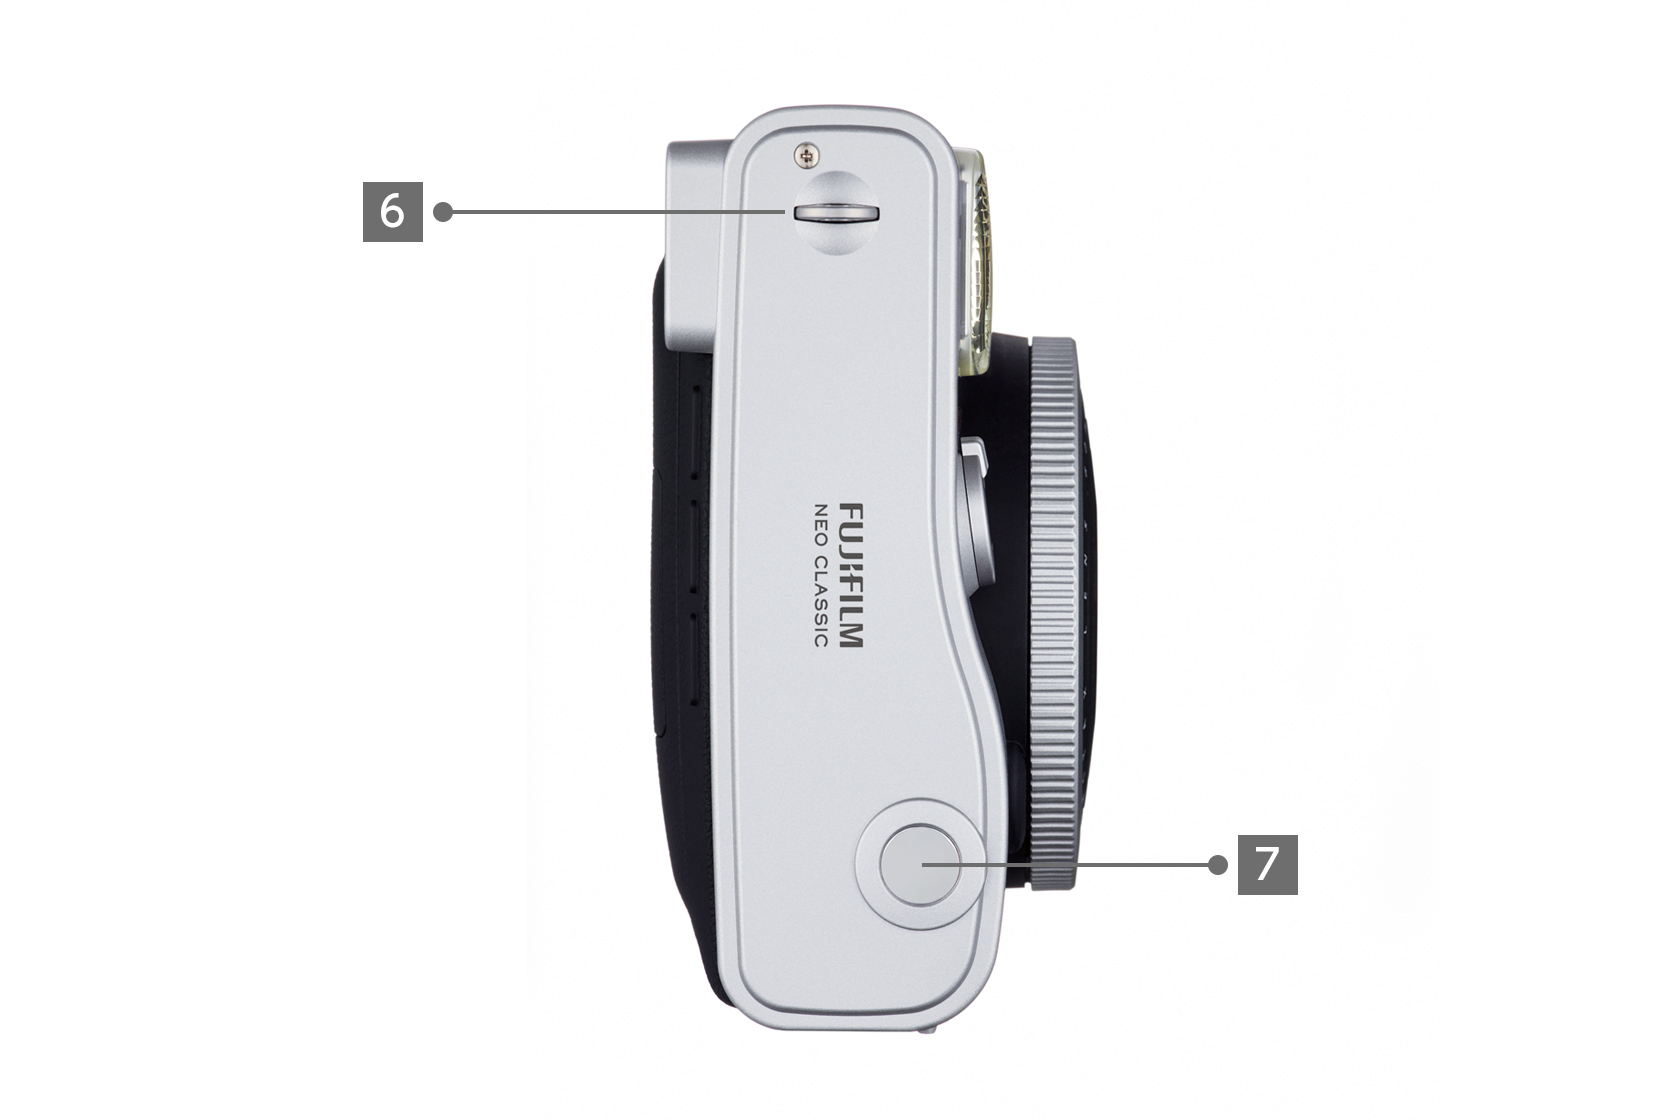 [photo] Side view of the Instax Mini 90 camera with different parts labeled 6 and 7